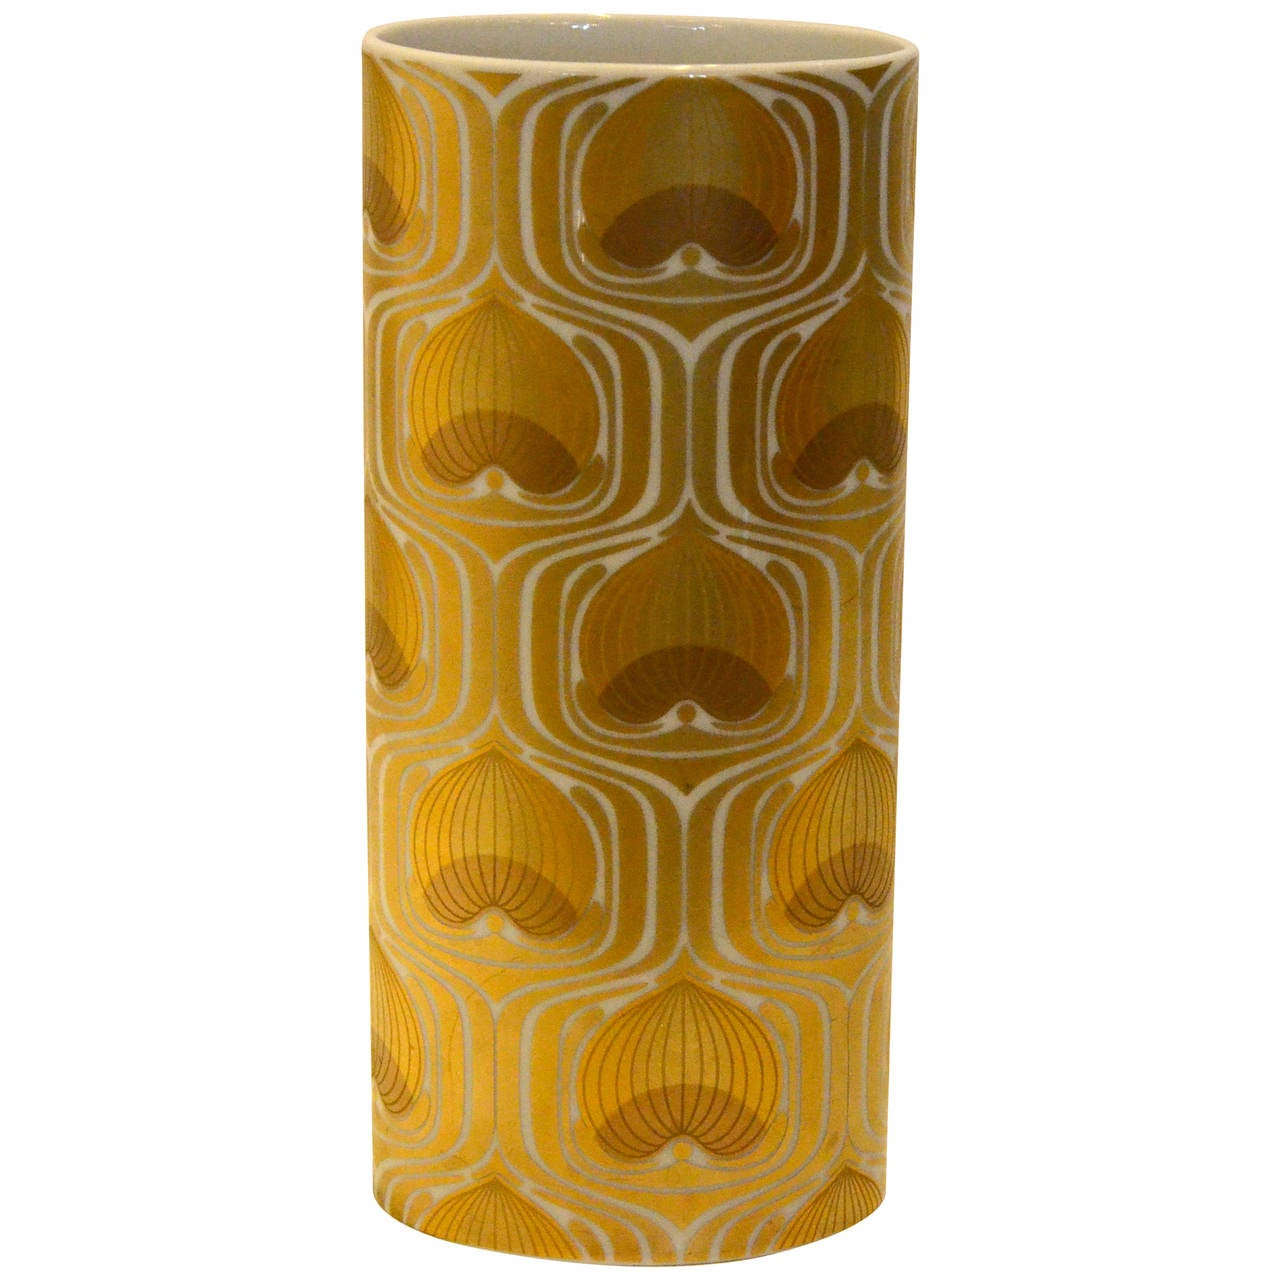 100th anniversary rosenthal gold and white porcelain vase at 1stdibs 100th anniversary rosenthal gold and white porcelain vase for sale reviewsmspy